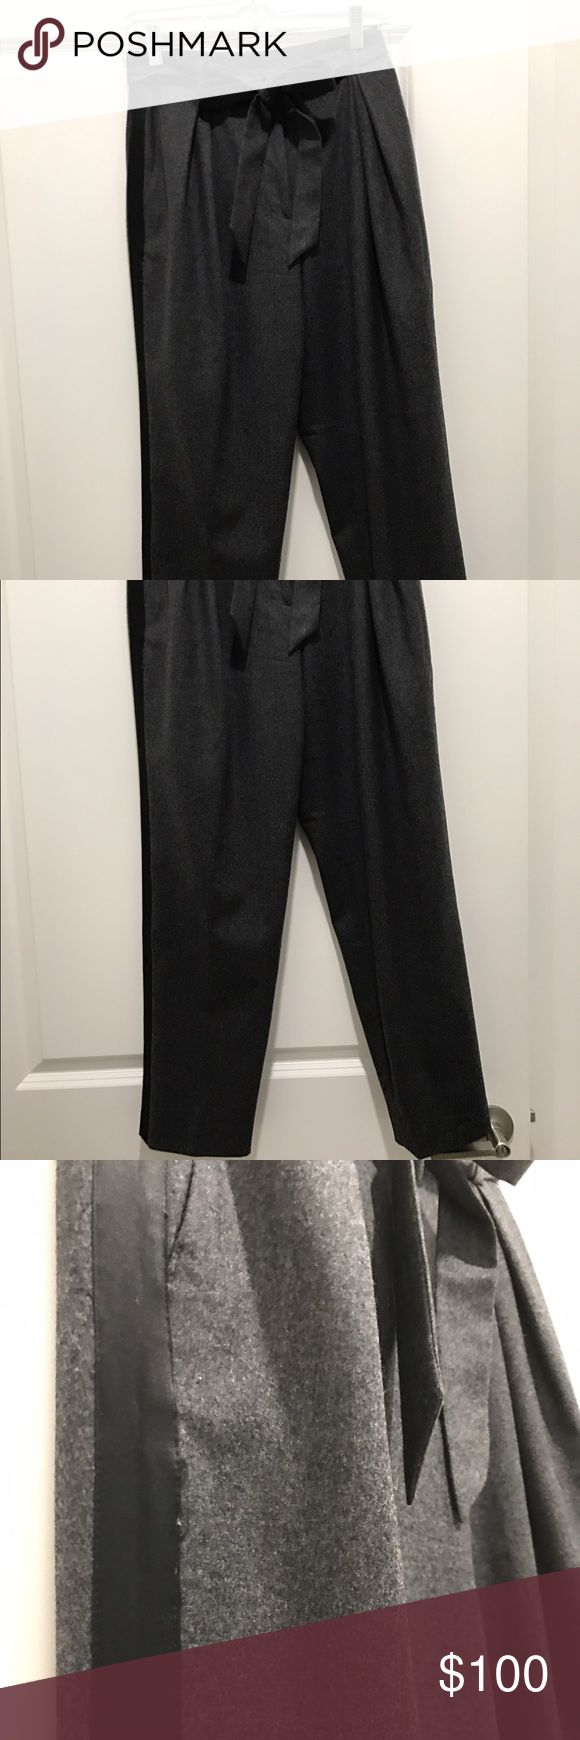 J.Crew Collection tie waist wool tuxedo pants High waisted 100% wool tuxedo pant. Tie belt at waist. Black silk tuxedo strip down legs. Front pleating for a flattering fit. Color is dark charcoal grey with black strip on each side of leg. Pant length hits just above the ankle. J. Crew Pants Trousers